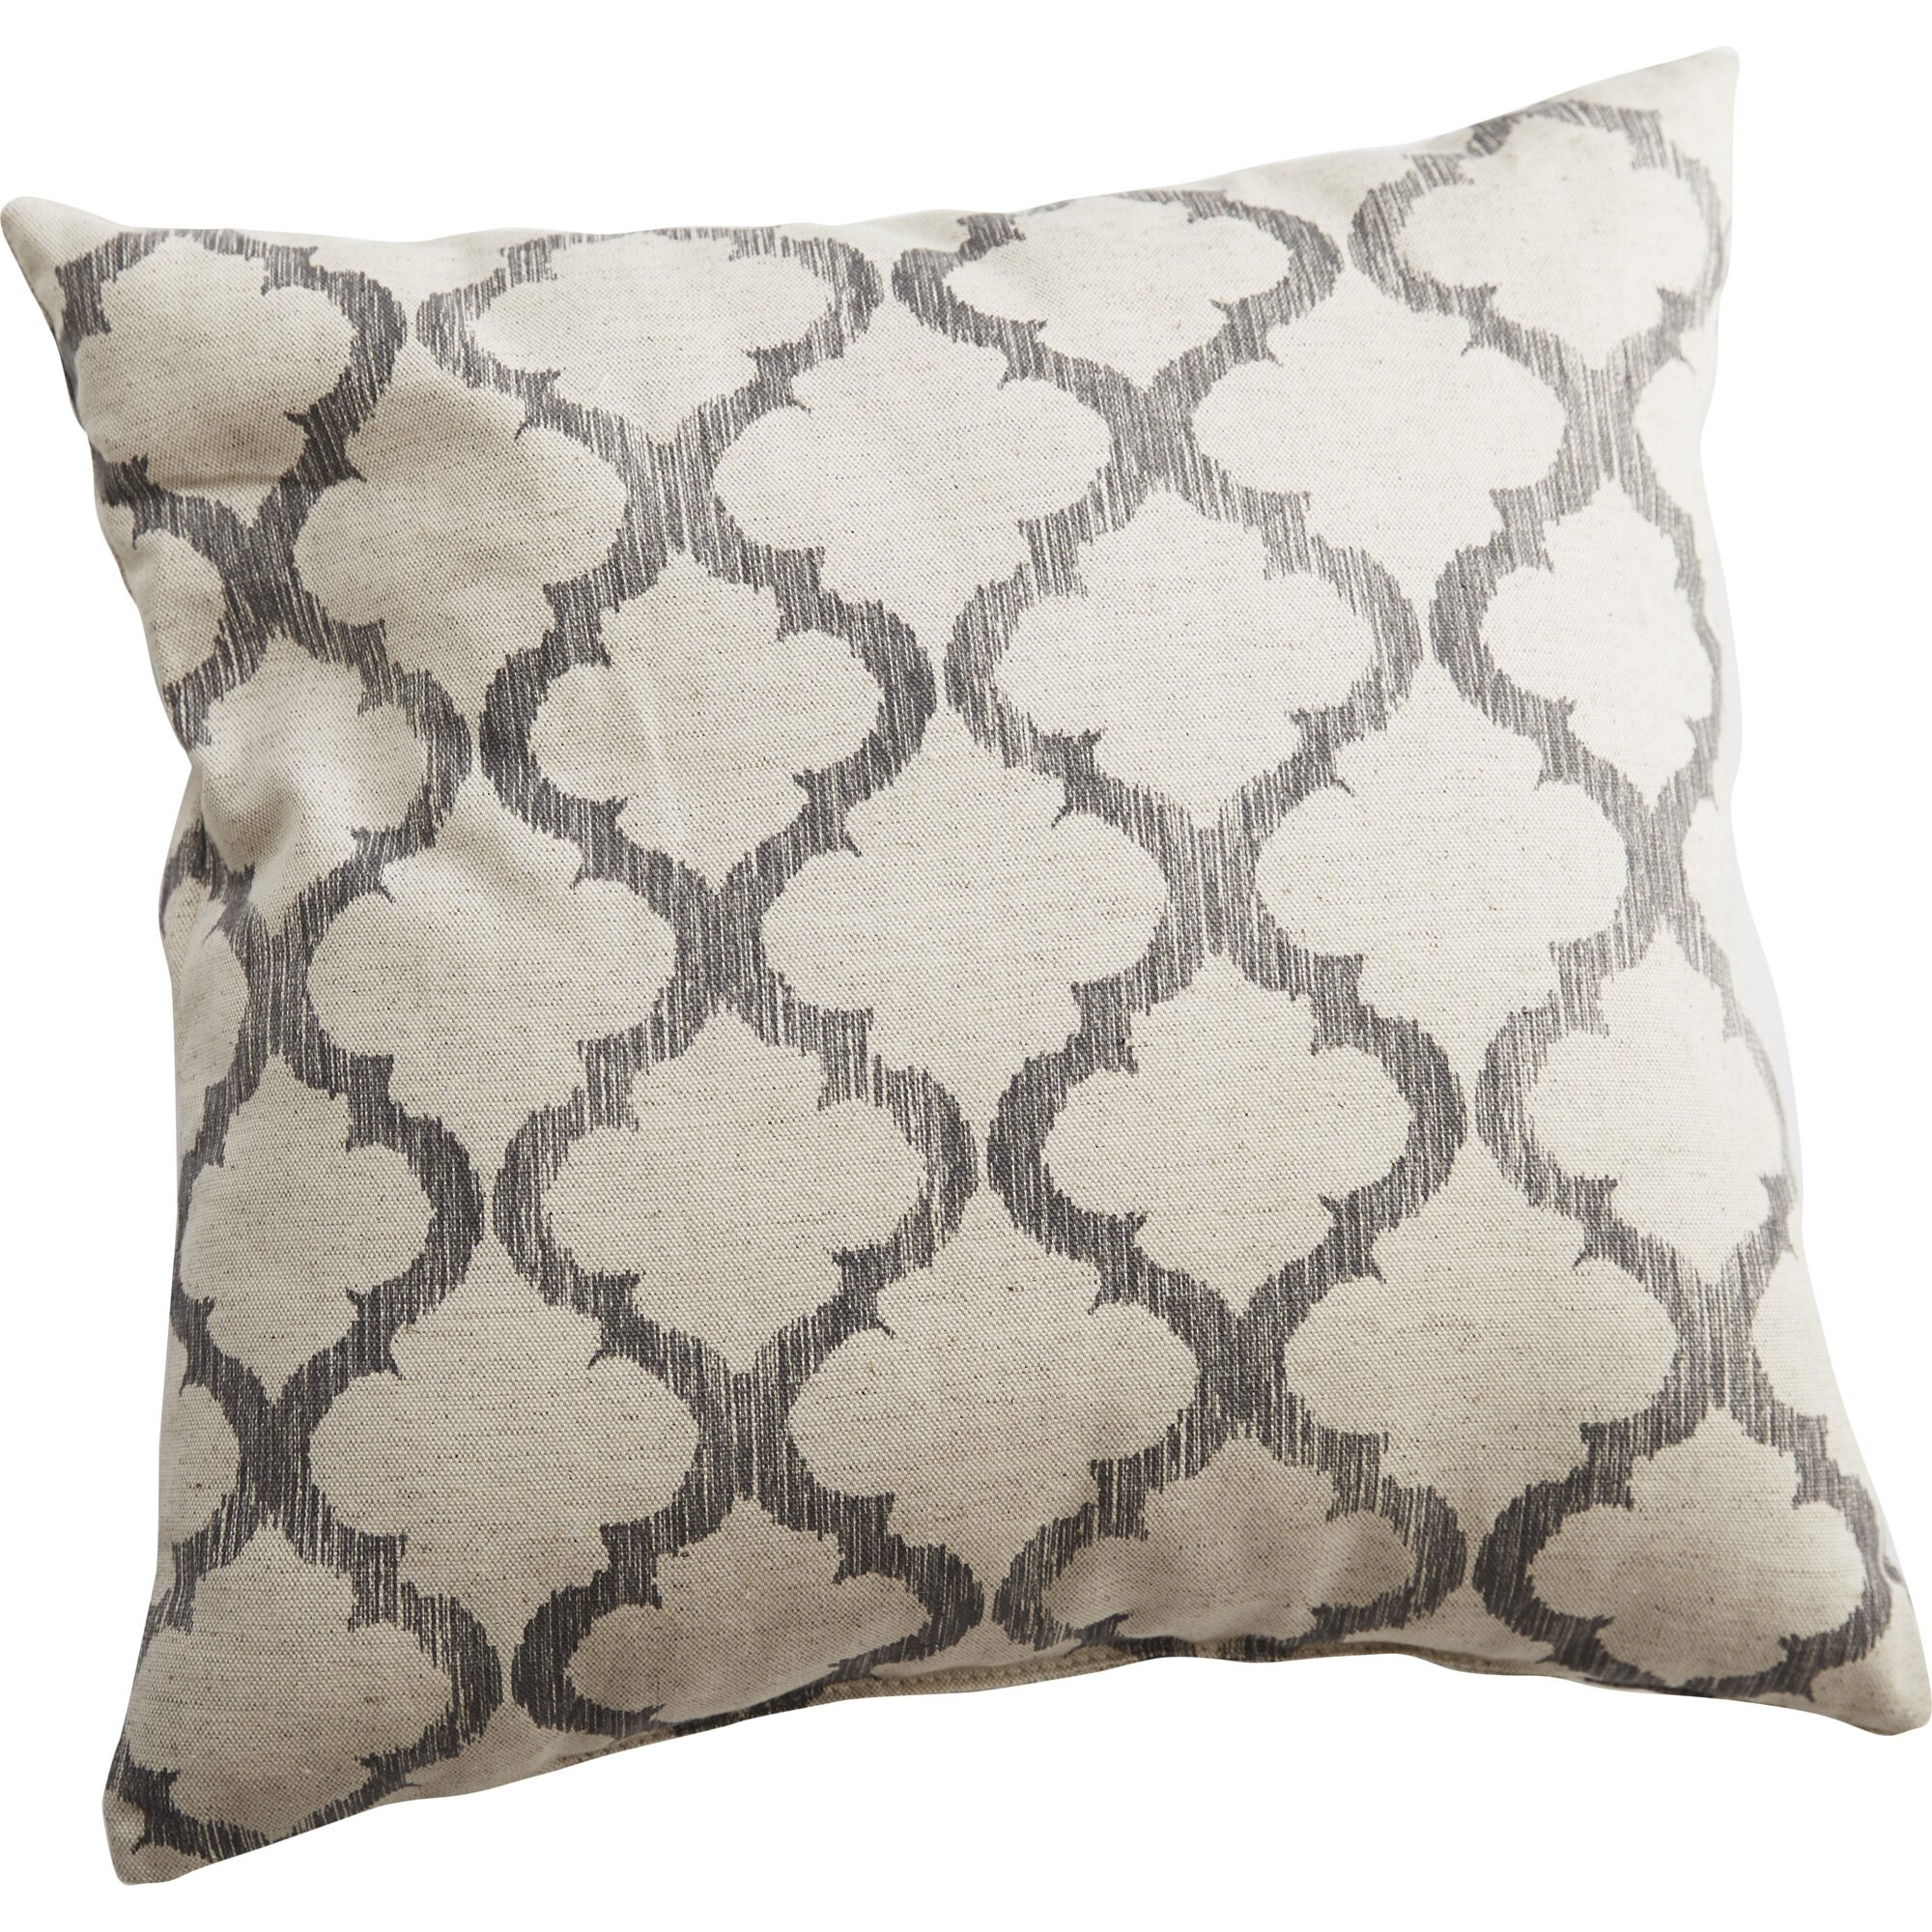 Decorative Pillows Linen : Swan Dye and Printing Linen Throw Pillow & Reviews Wayfair